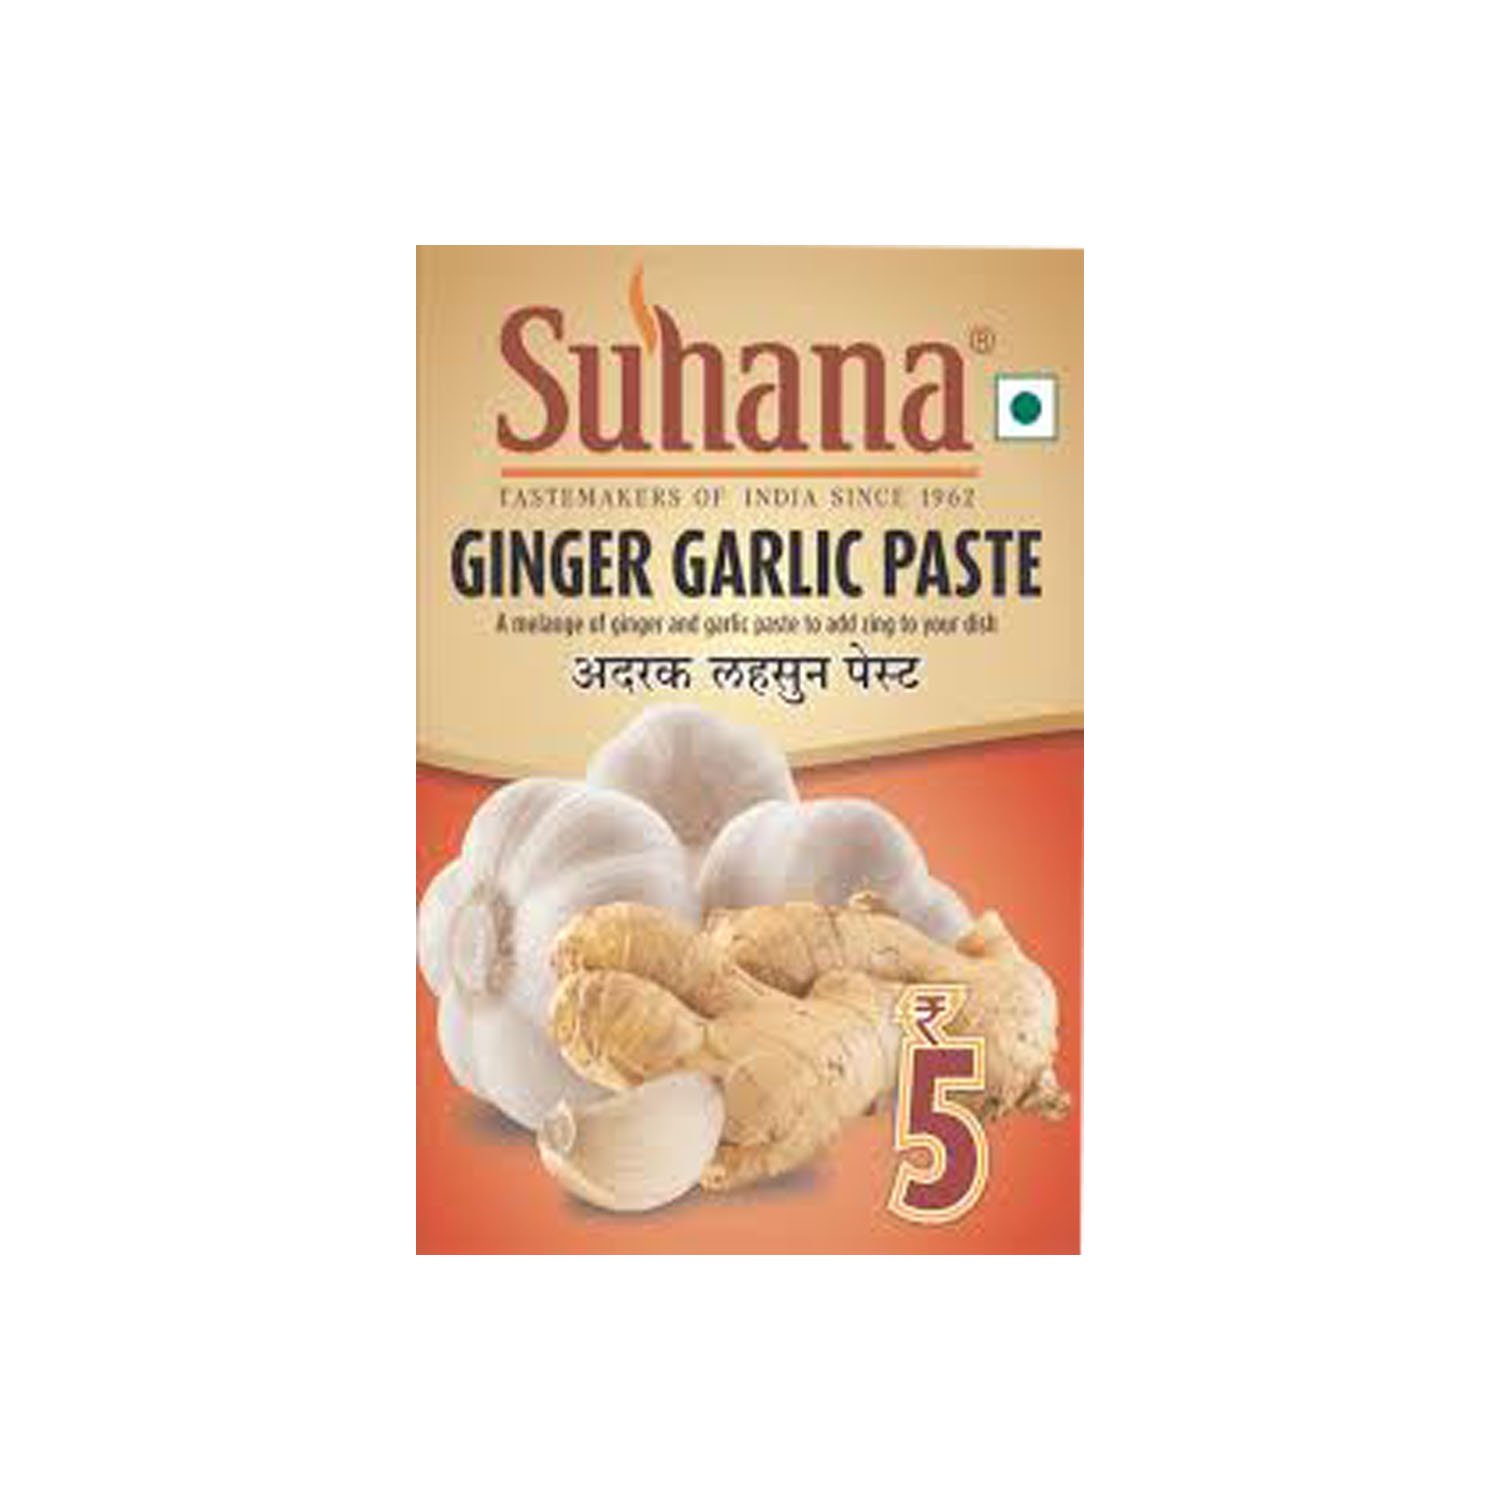 Suhana Ginger Garlic Paste 300g